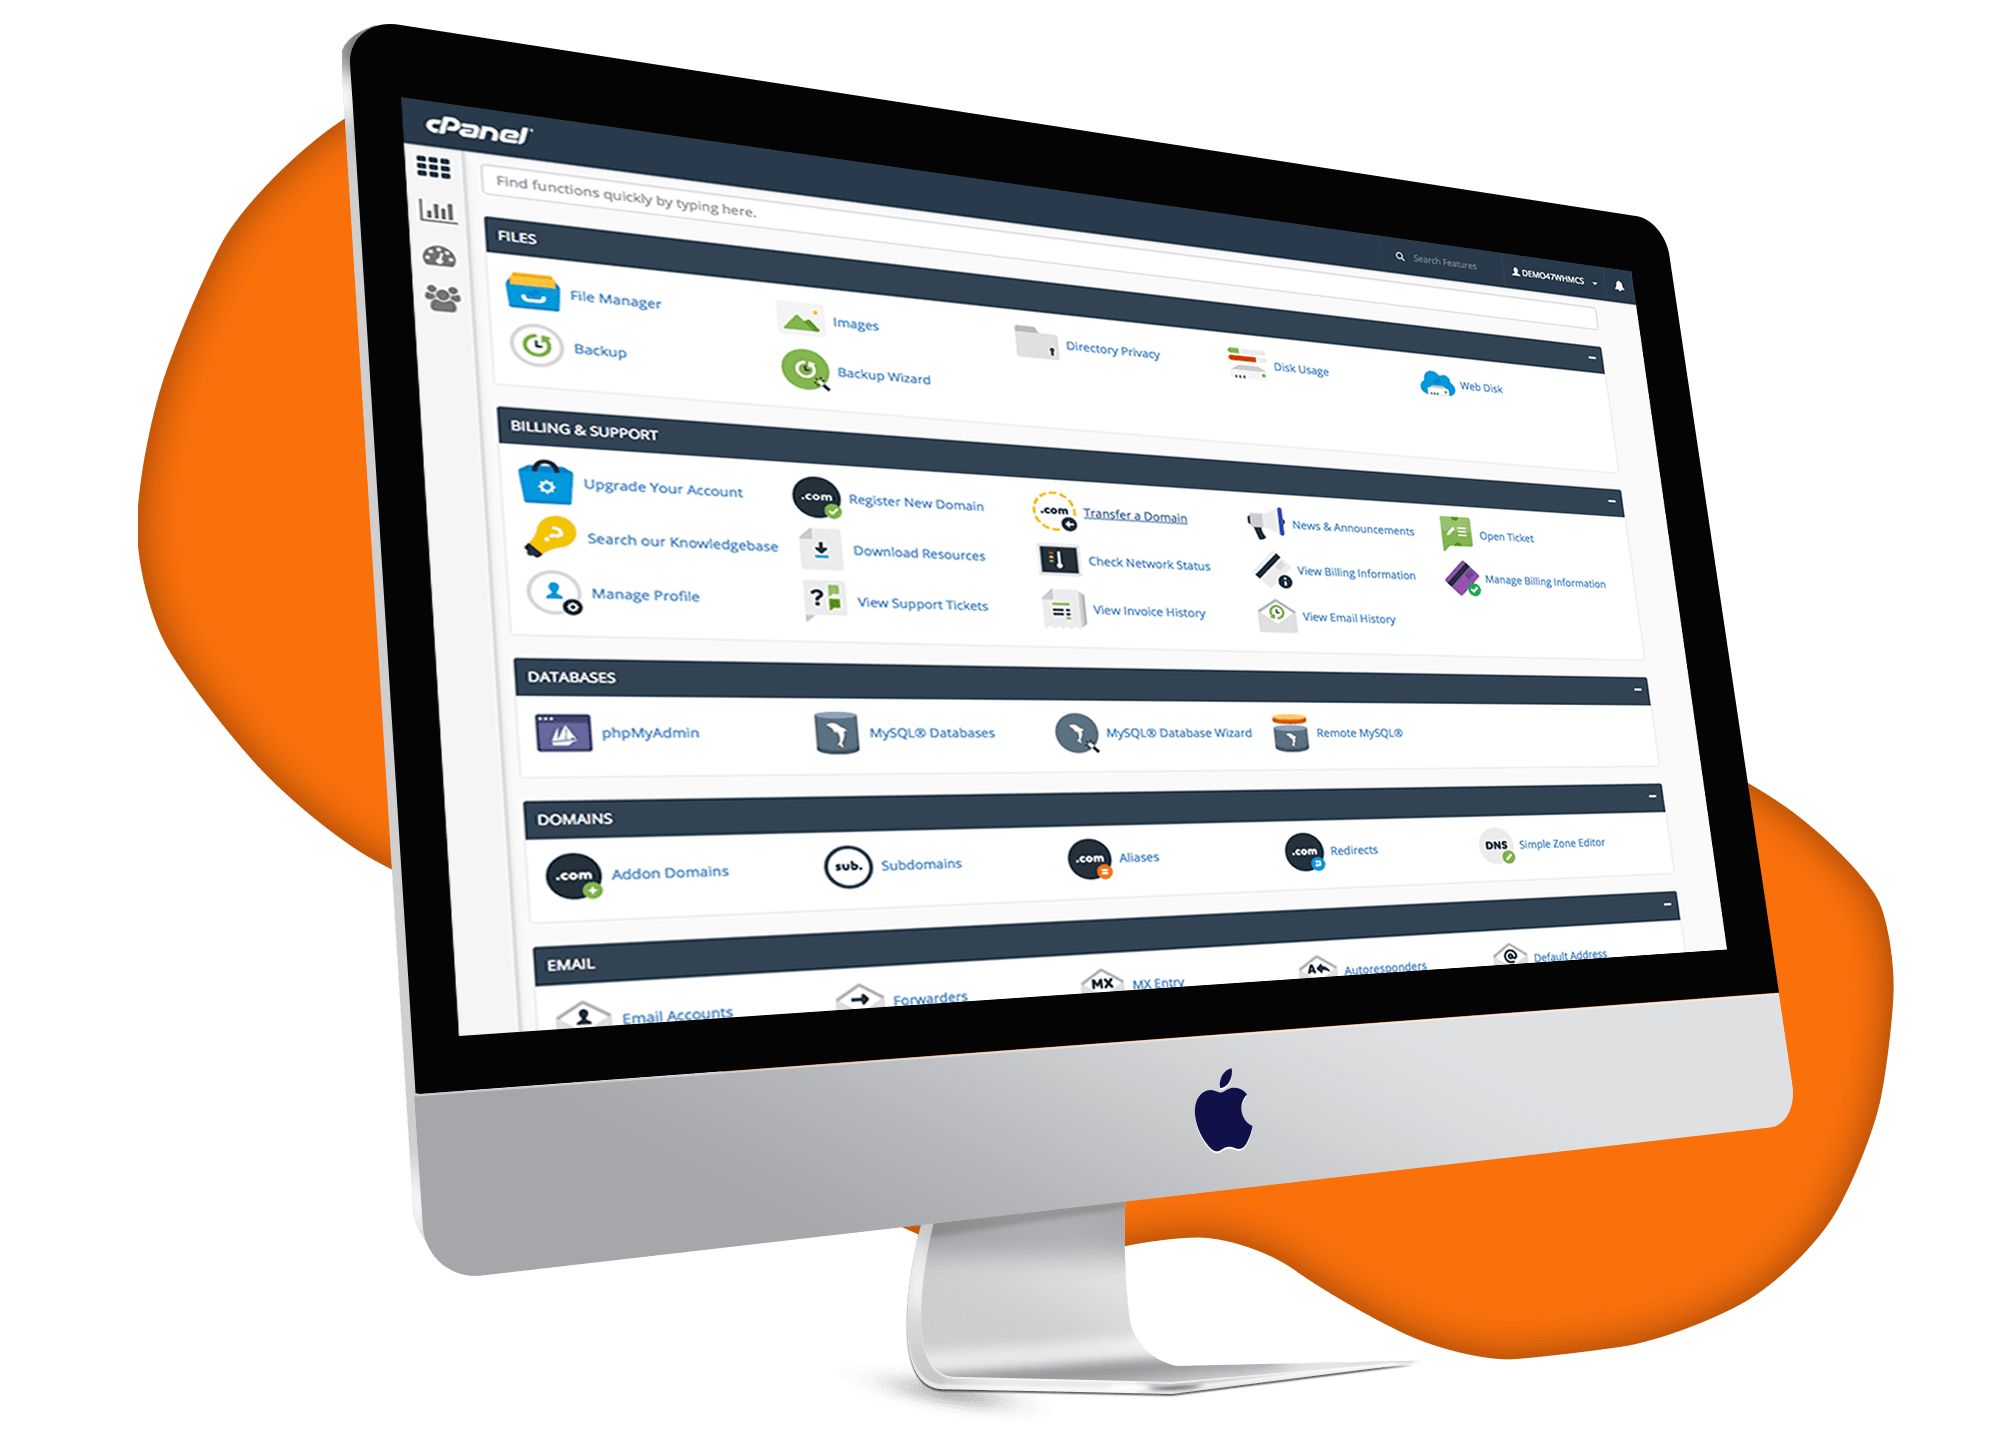 MemDog Domains cPanel Hosting | Business Website Hosting Services | cPanel Linux Hosting Plans